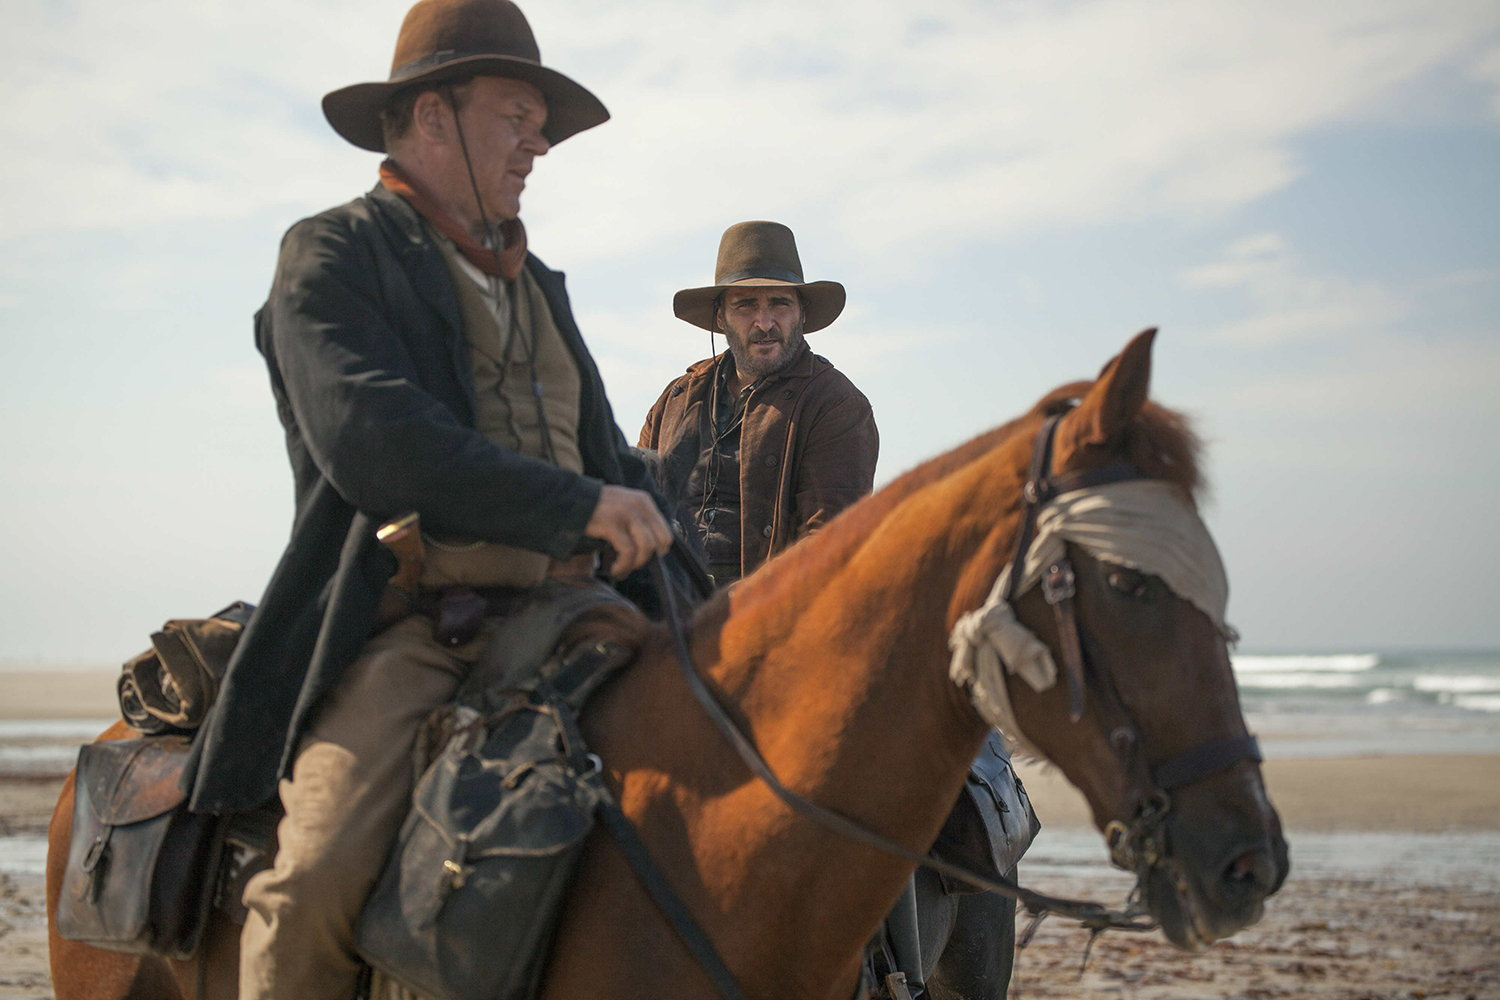 jopaquin phoenix on horse, the sisters brothers